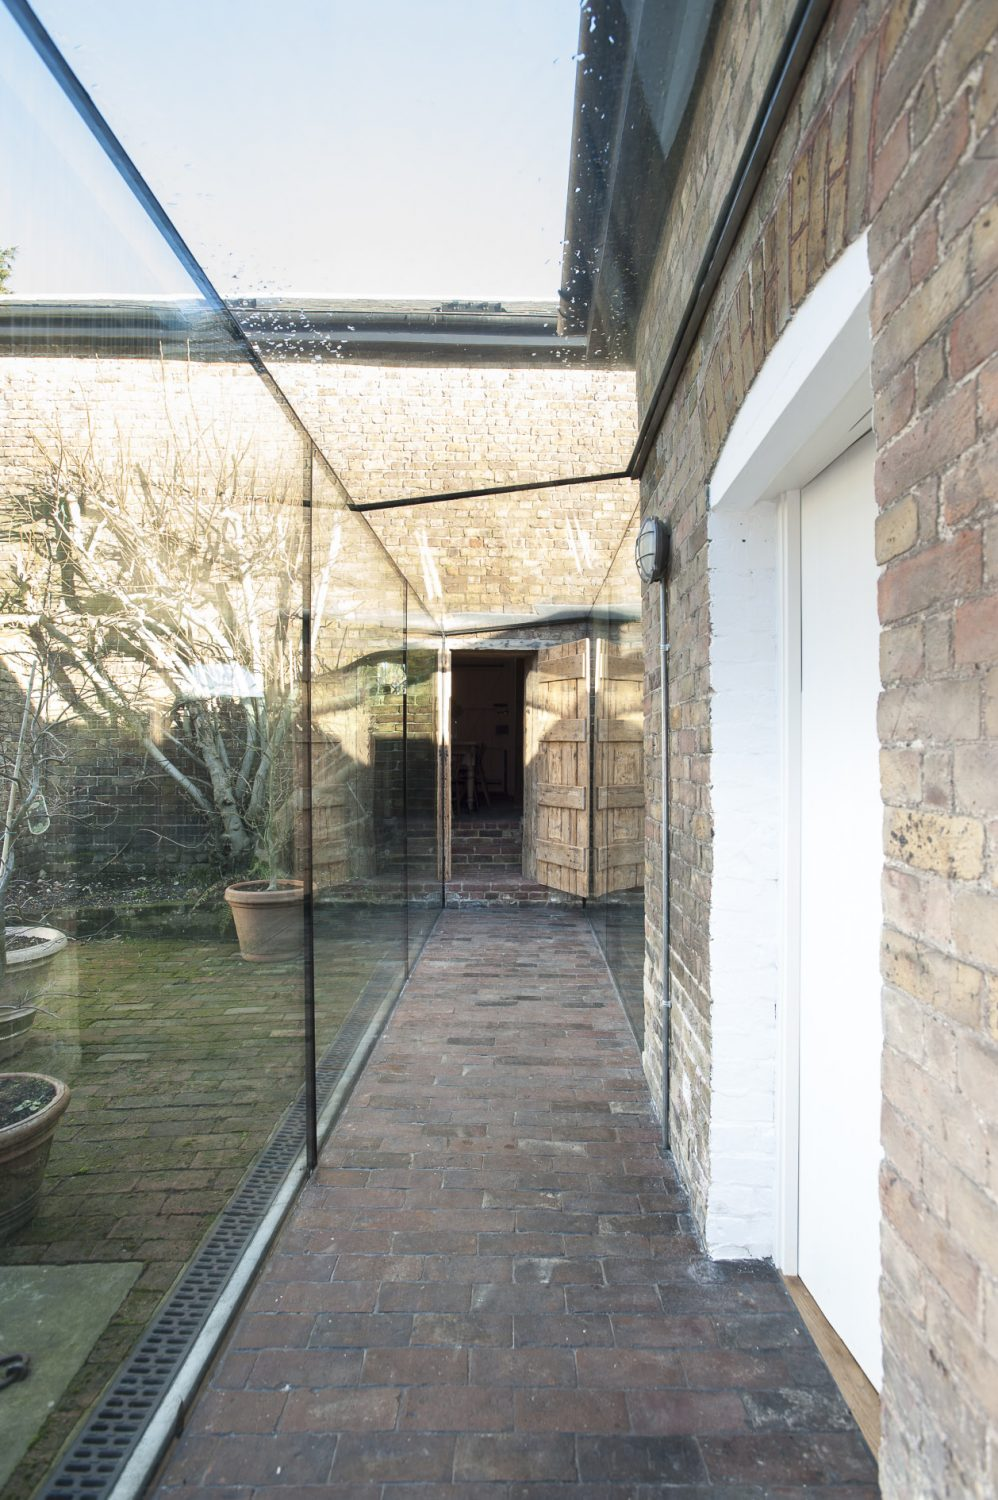 """Adrian undertook the mammoth task of installing the glasswork himself, enlisting the help of a spider crane into the courtyard. """"It was pretty nerve-wracking but it worked,"""" he says"""